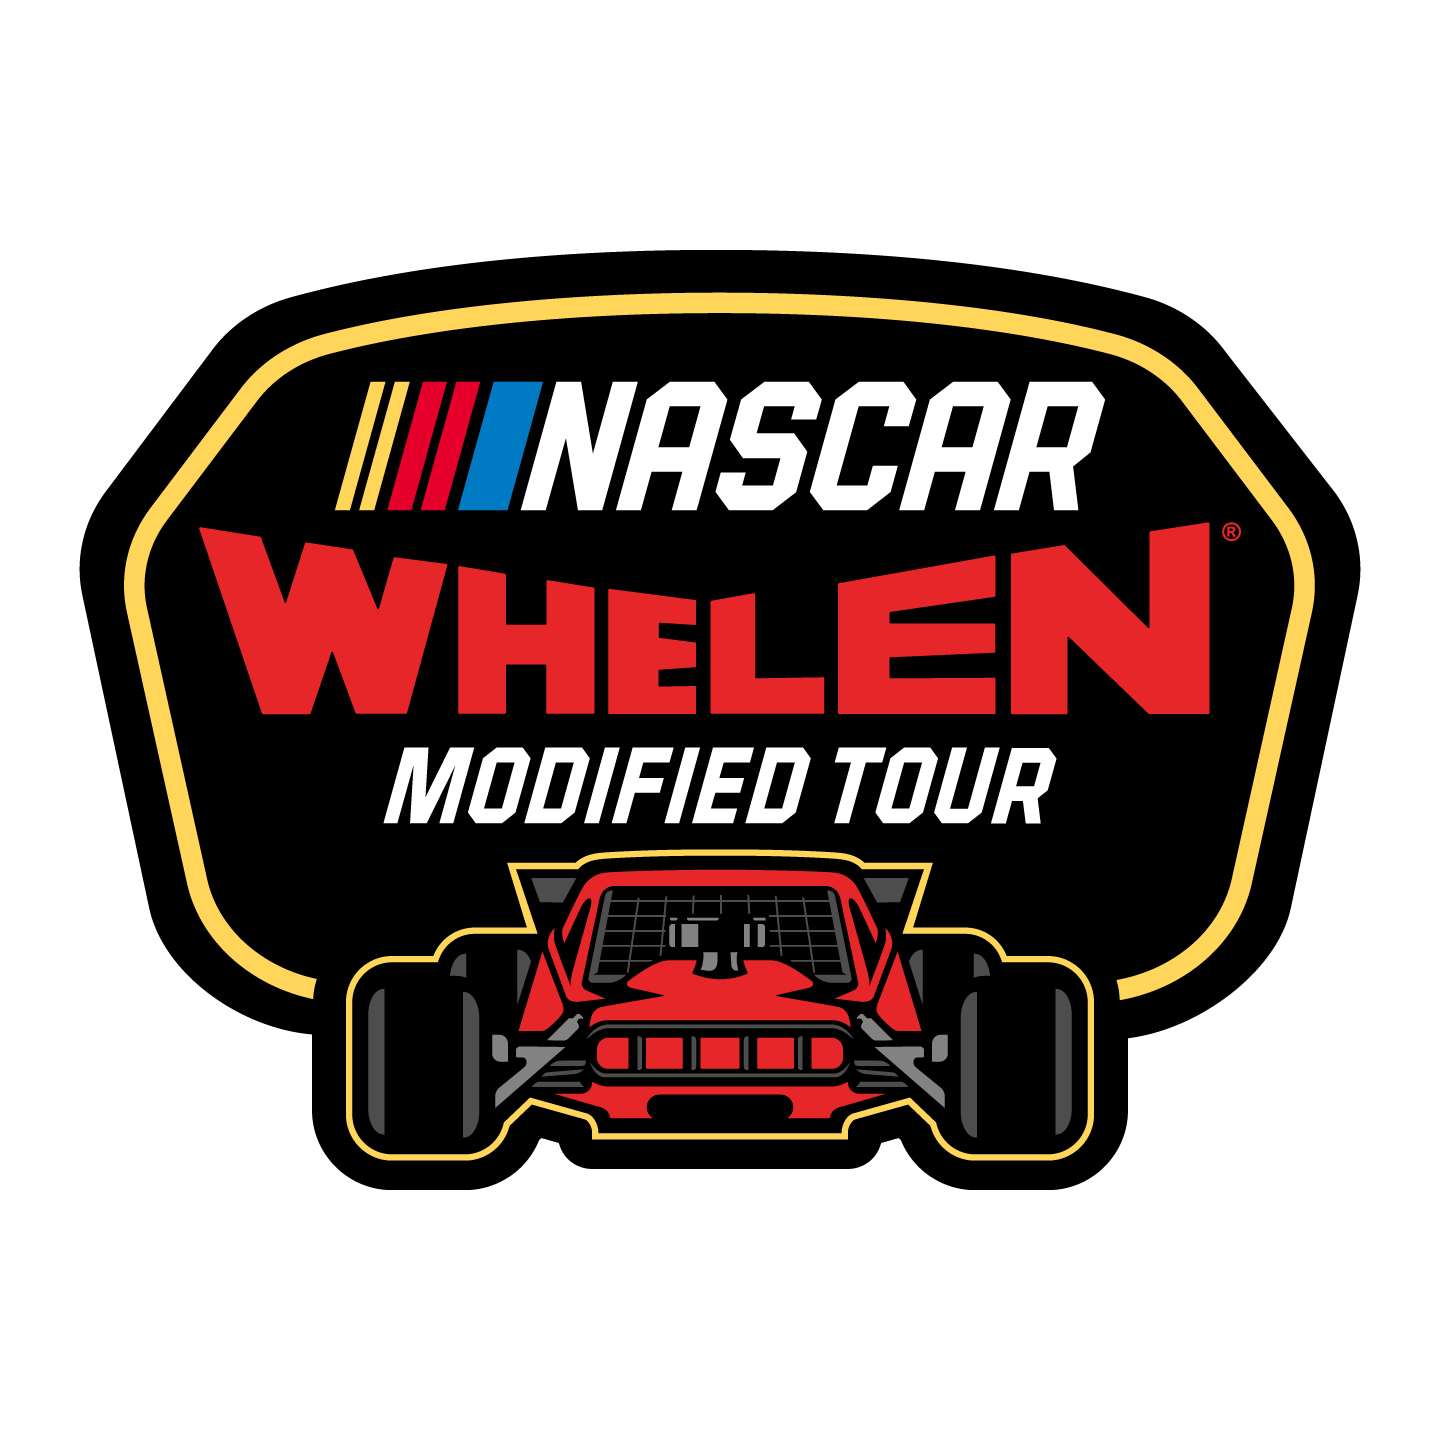 Nascar Whelen Modified Tour Stafford 150 - August 7th